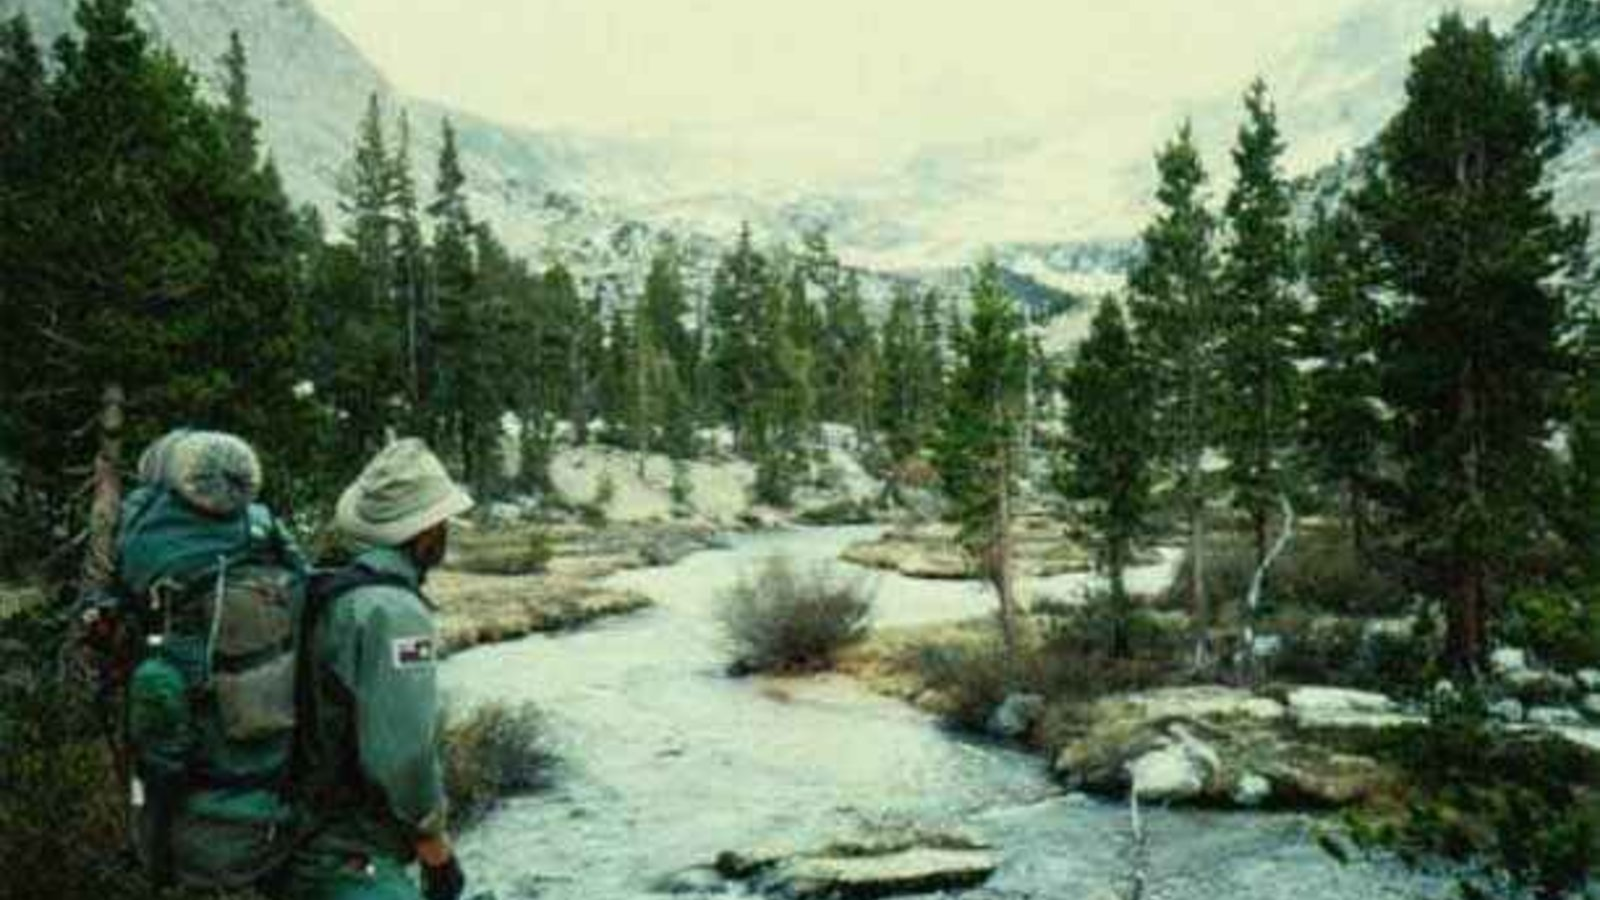 Walking The West - 2600 Miles from Mexico to Canada Along the Pacific Crest Trail